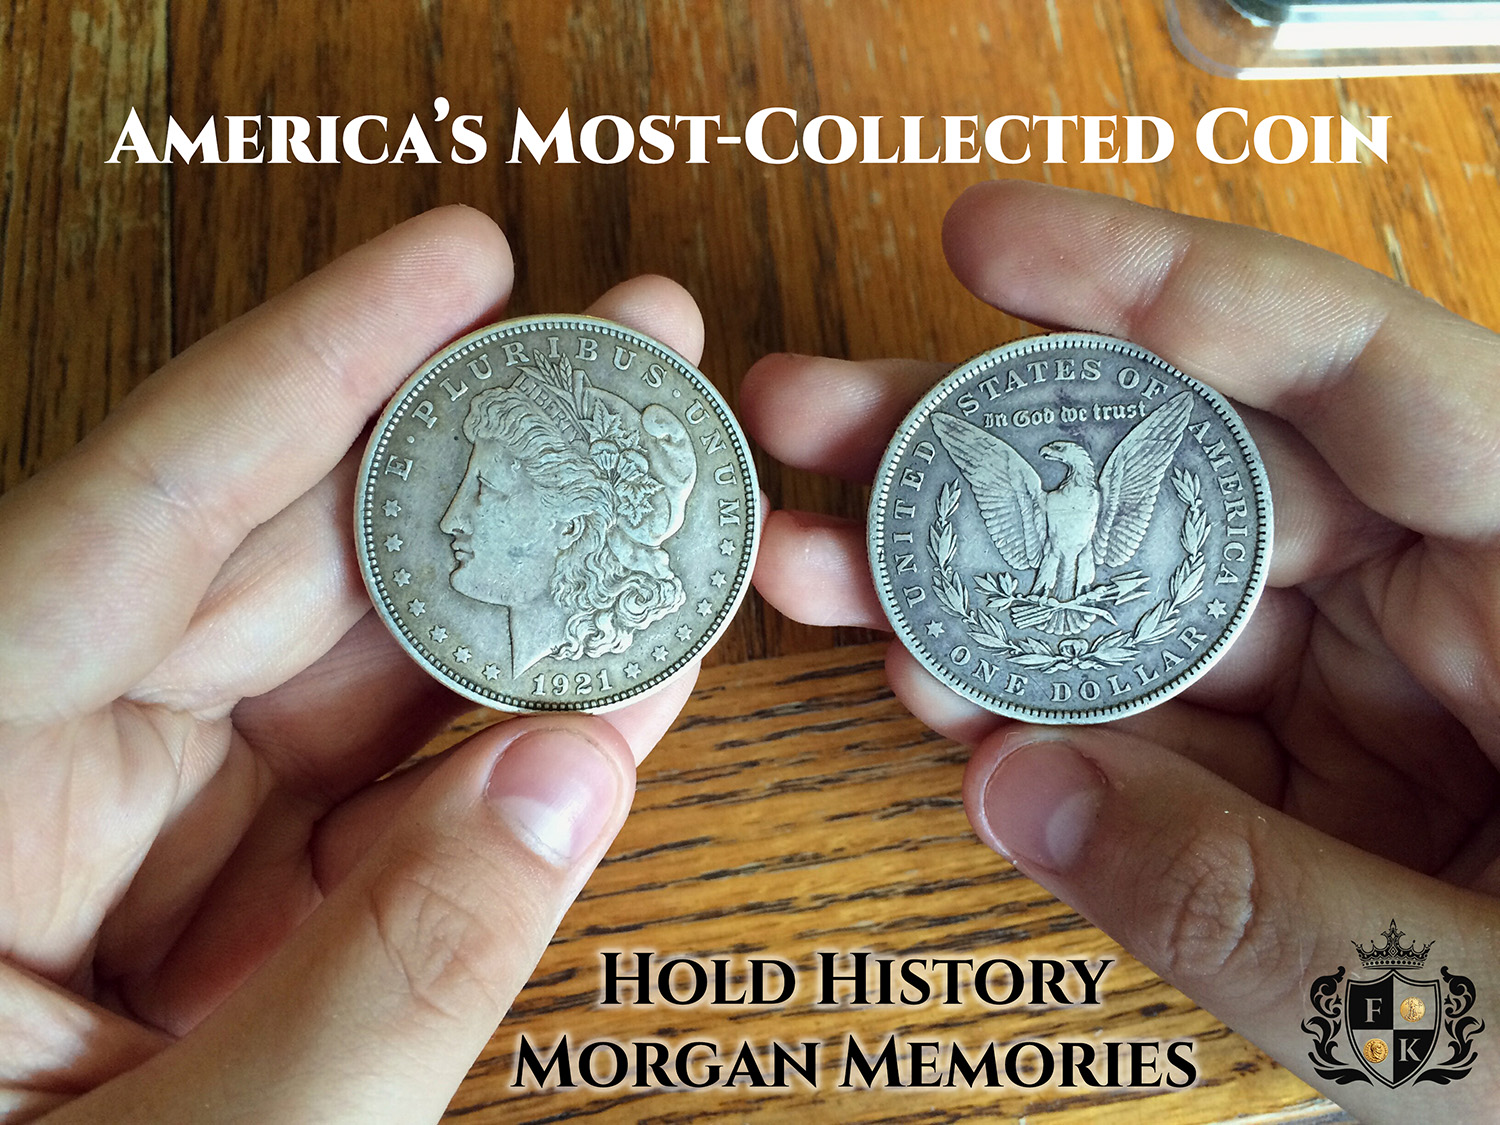 Holding two old silver dollars in hands